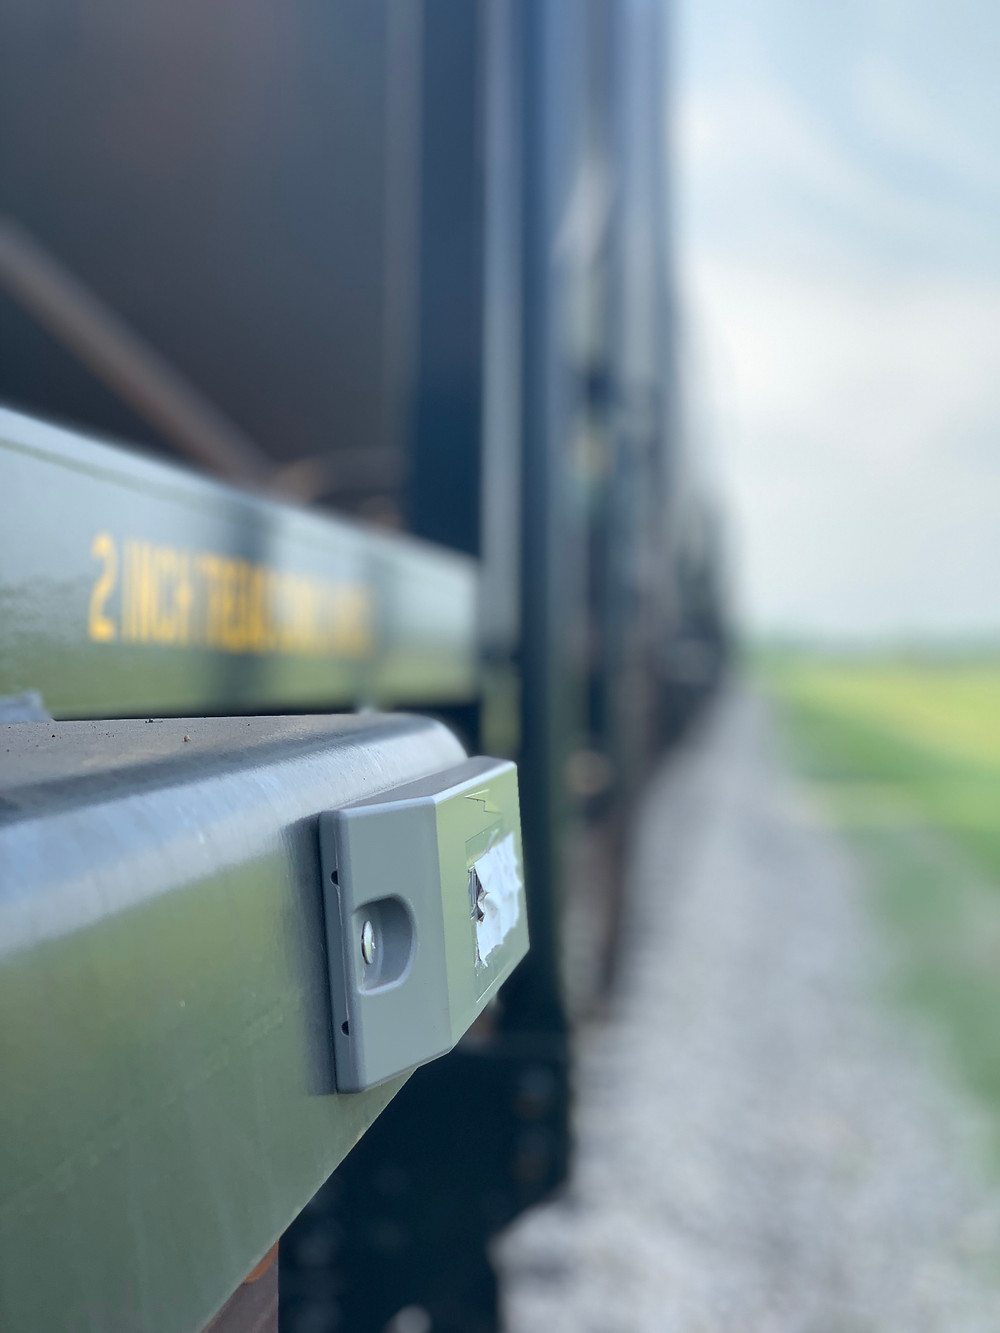 Automatic Equipment Identification (AEI) Tag in focus mounted on a railcar.